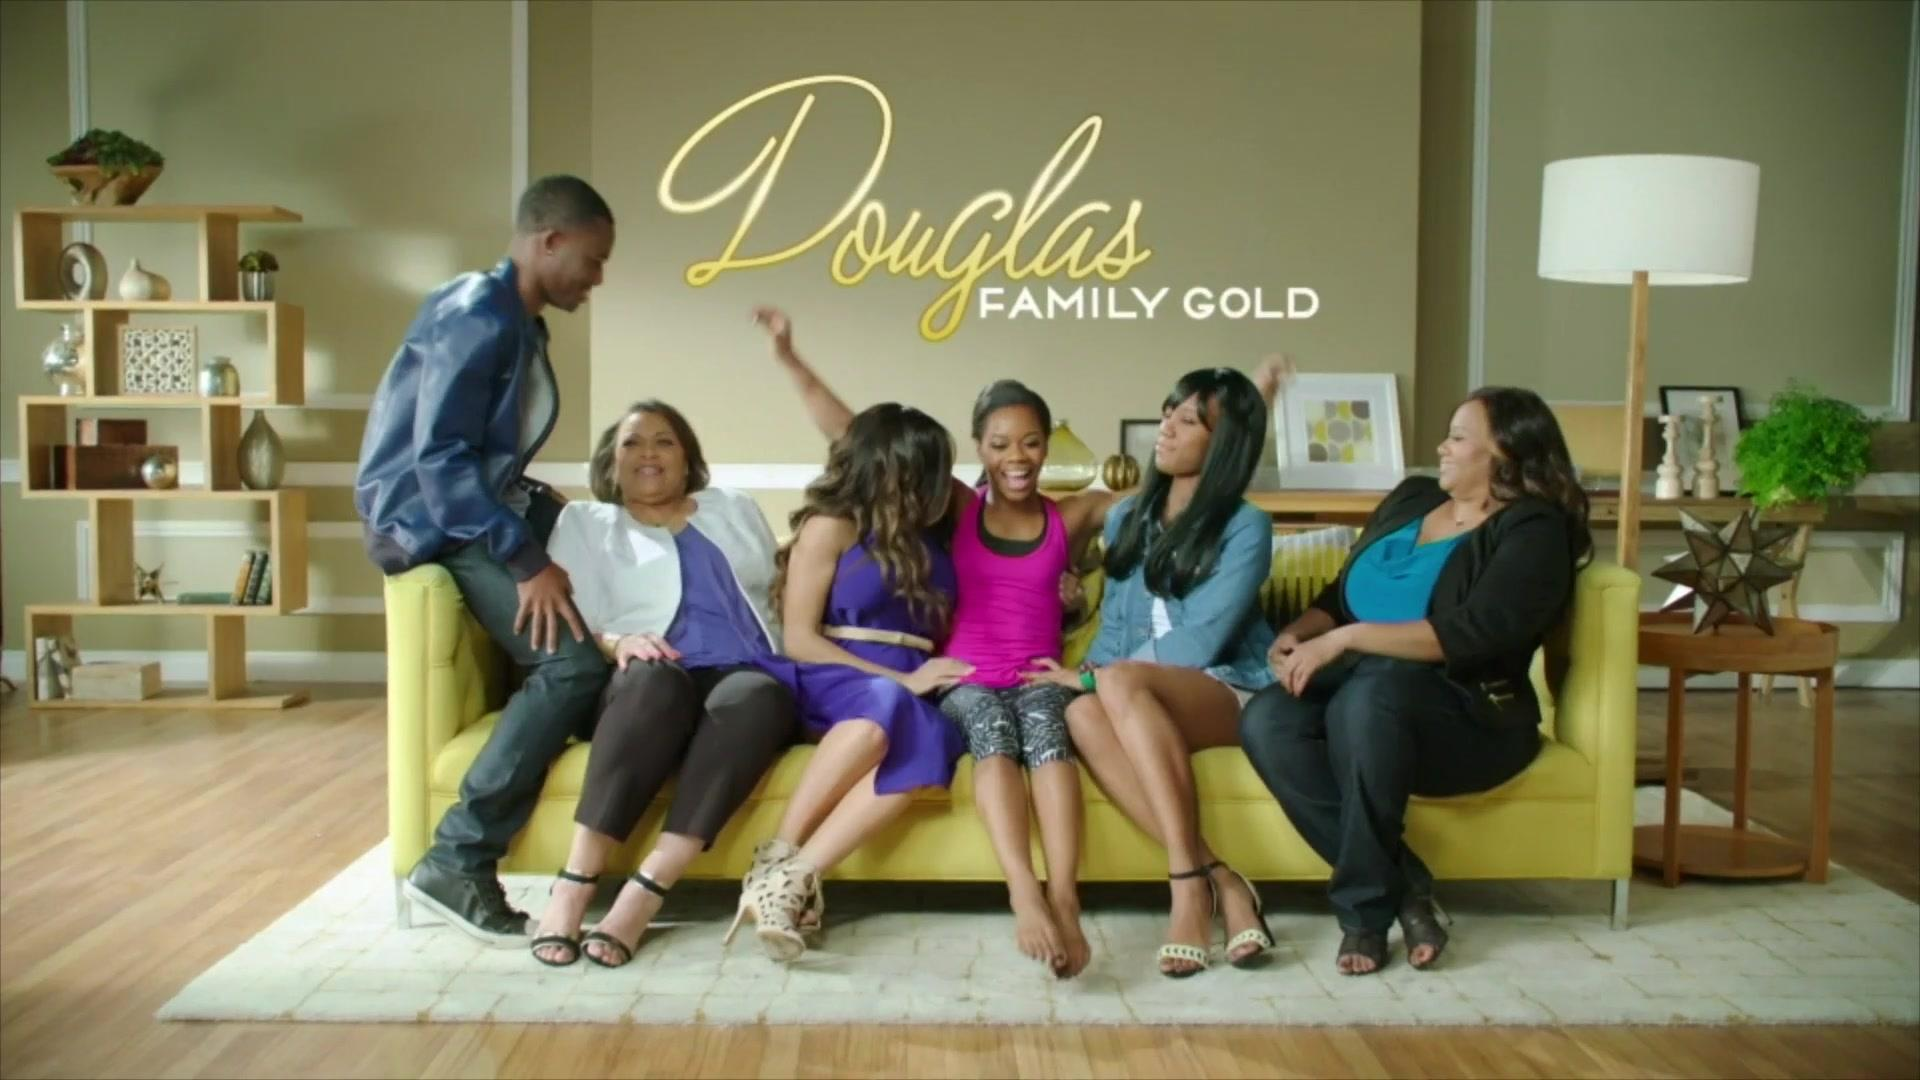 From left : Johnathan Douglas, Carolyn Ford, Arielle Hawkins, Gabby Douglas, Joyelle Douglas and Natalie Hawkins on Douglas Family Gold cast.